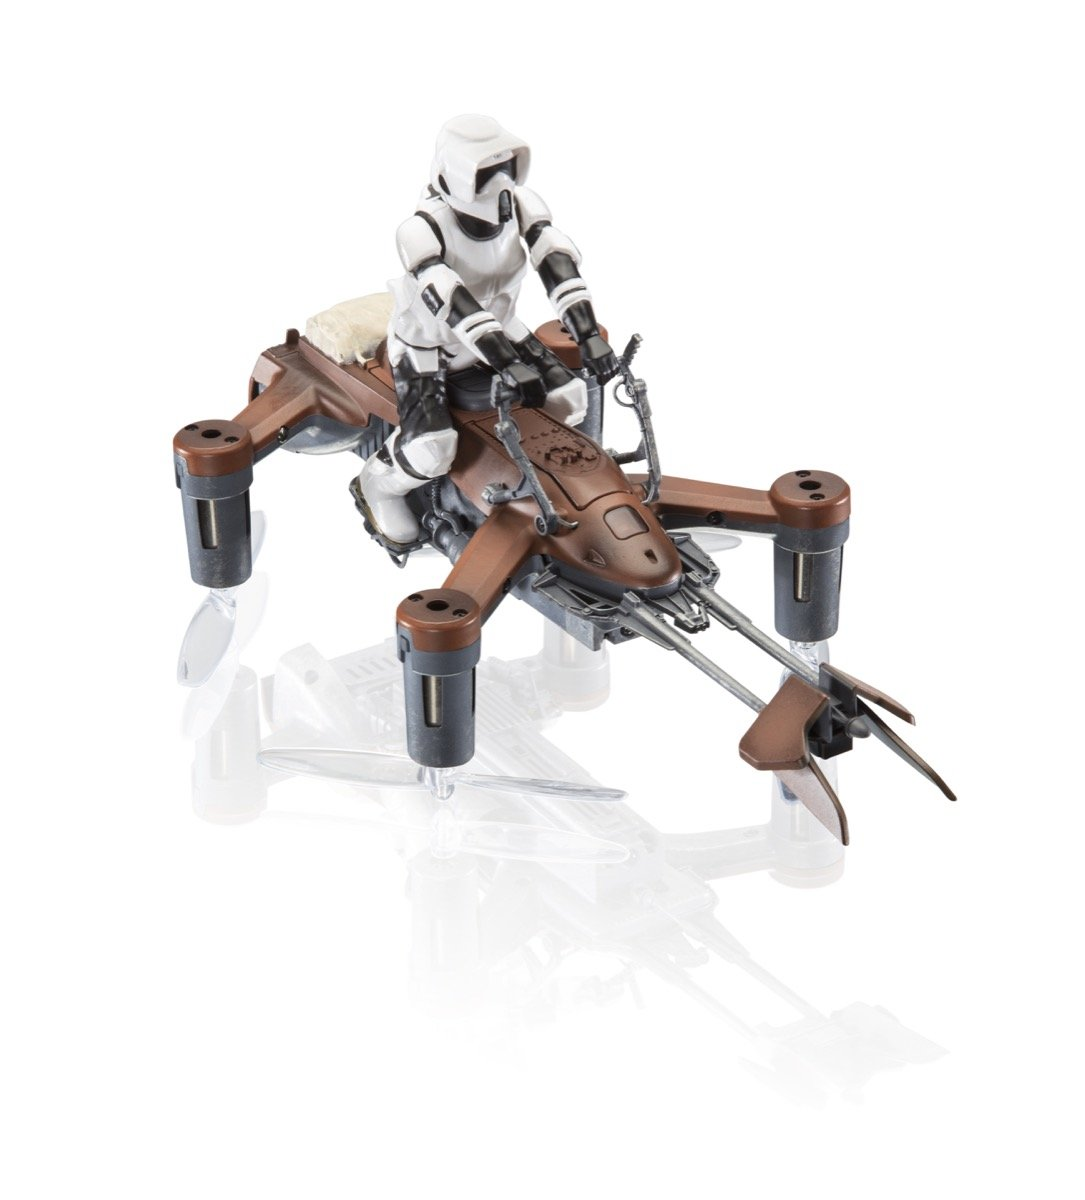 Propel Star Wars Quadcopter: Speeder Bike Collectors Edition Box by Propel Toys